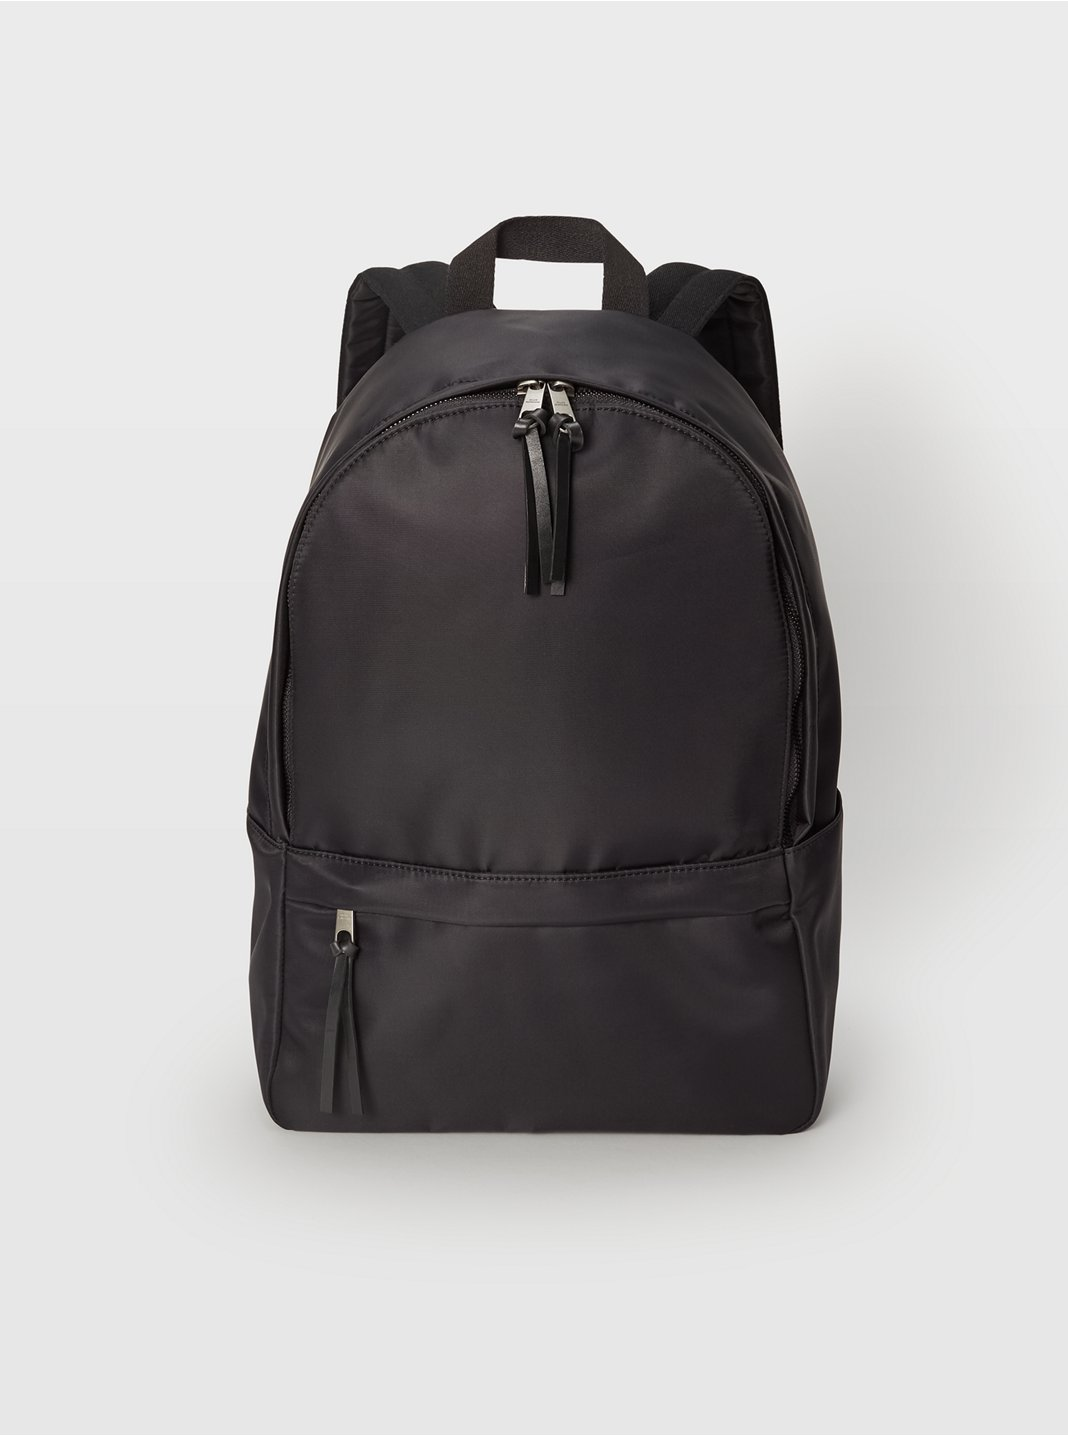 Club Monaco Backpack